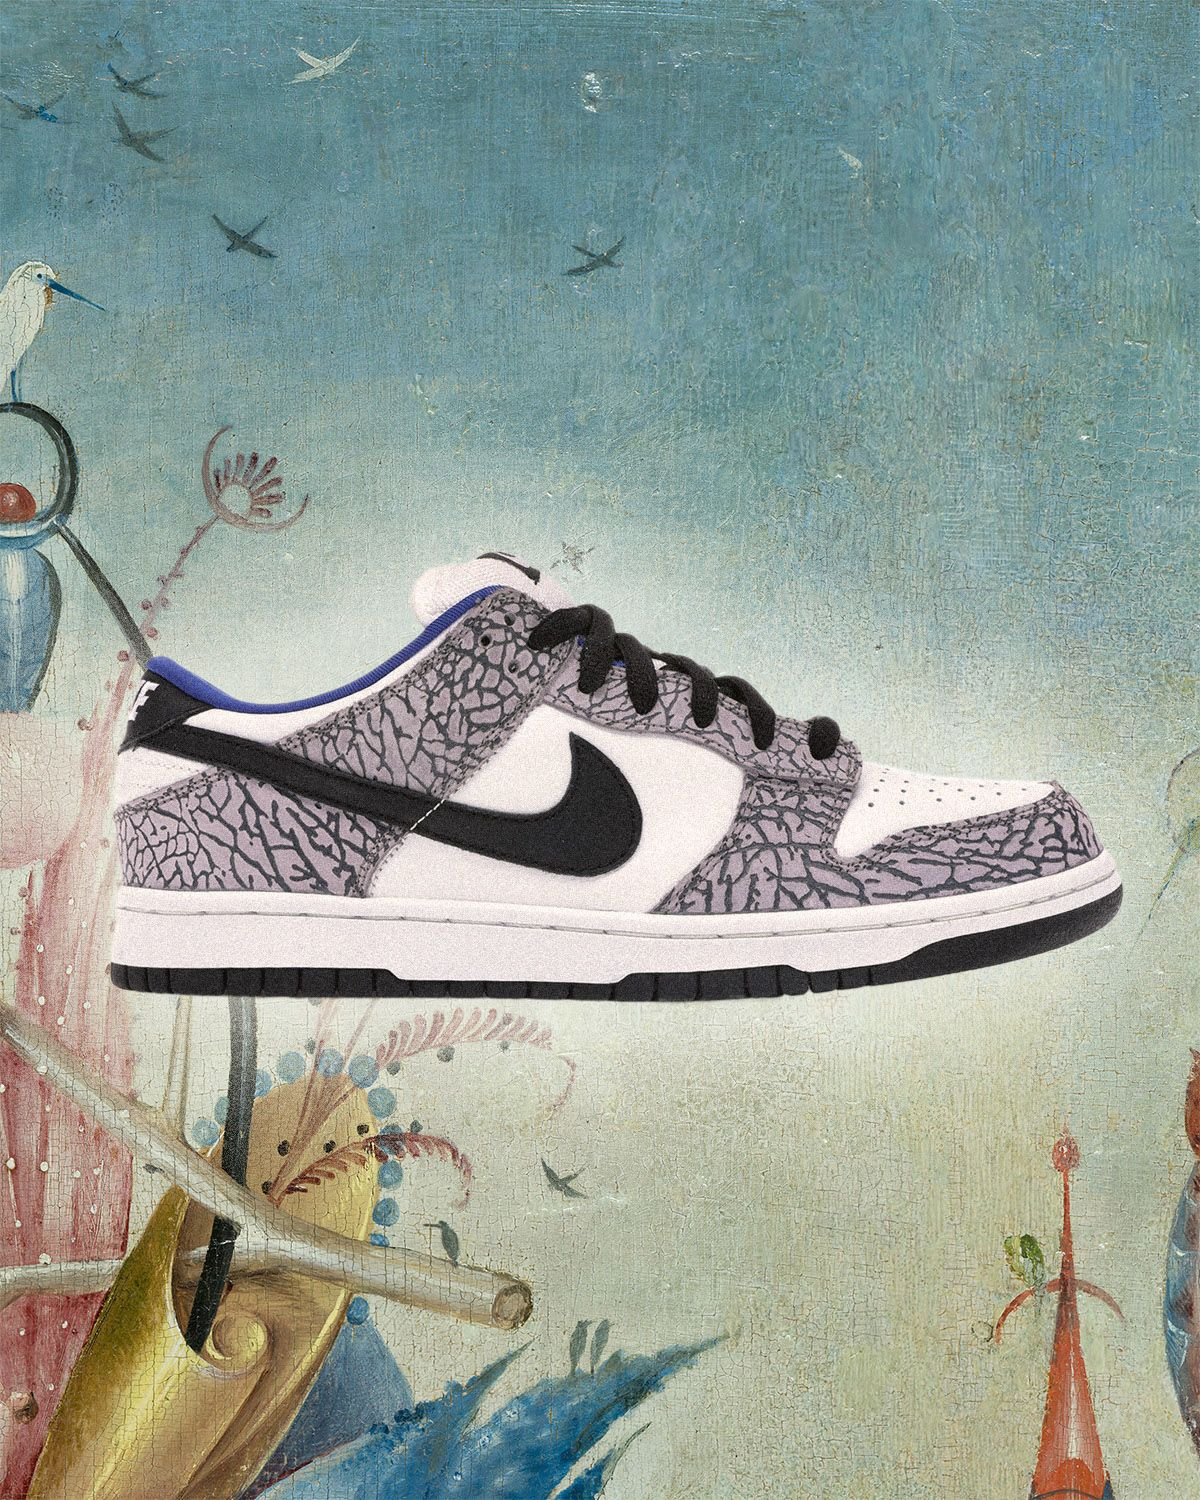 The 50 Most Influential Nike Dunks in History 202